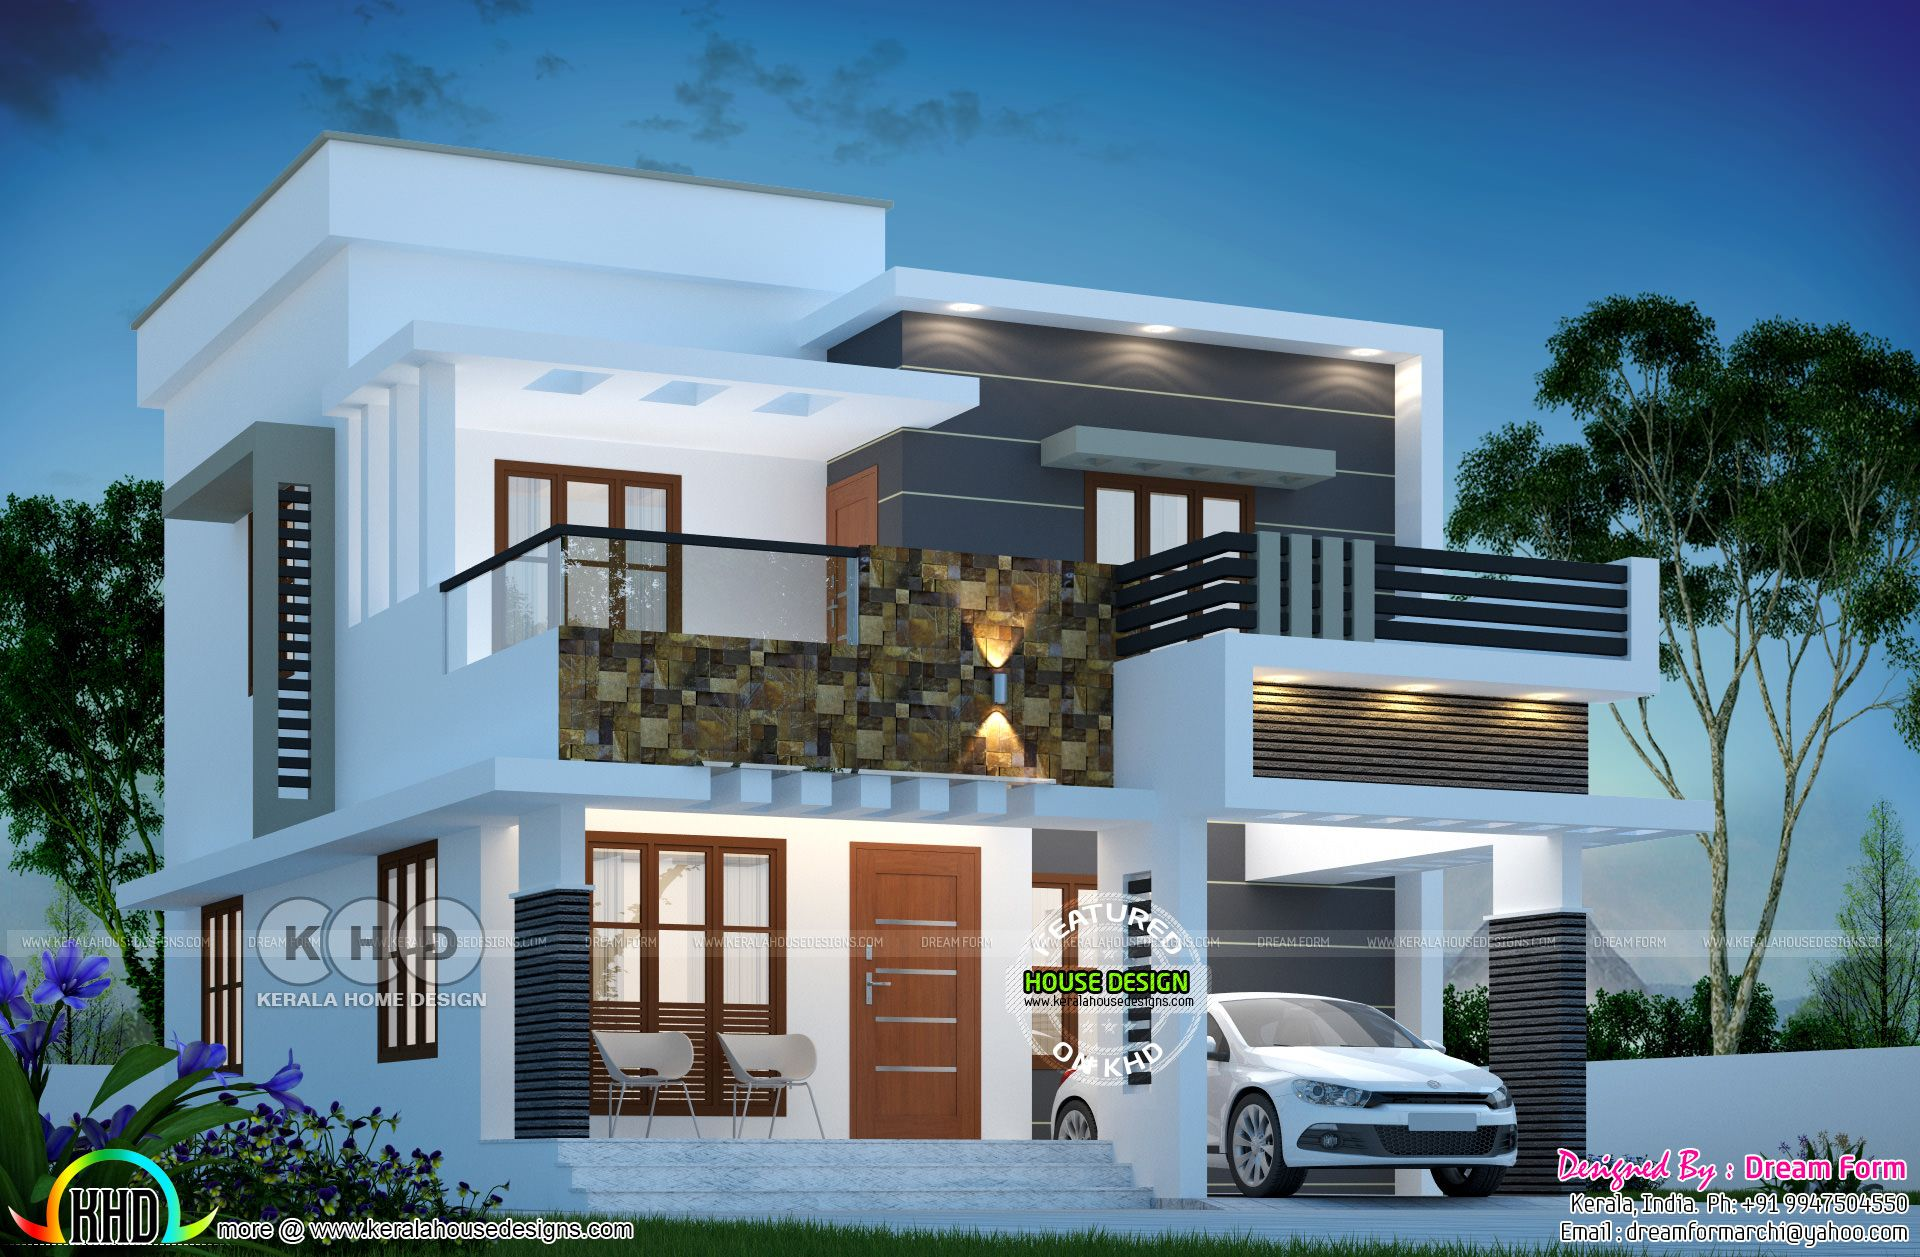 1615 Square Feet 3 Bedroom Modern Flat Roof House Flat Roof House Bungalow House Design 2 Storey House Design